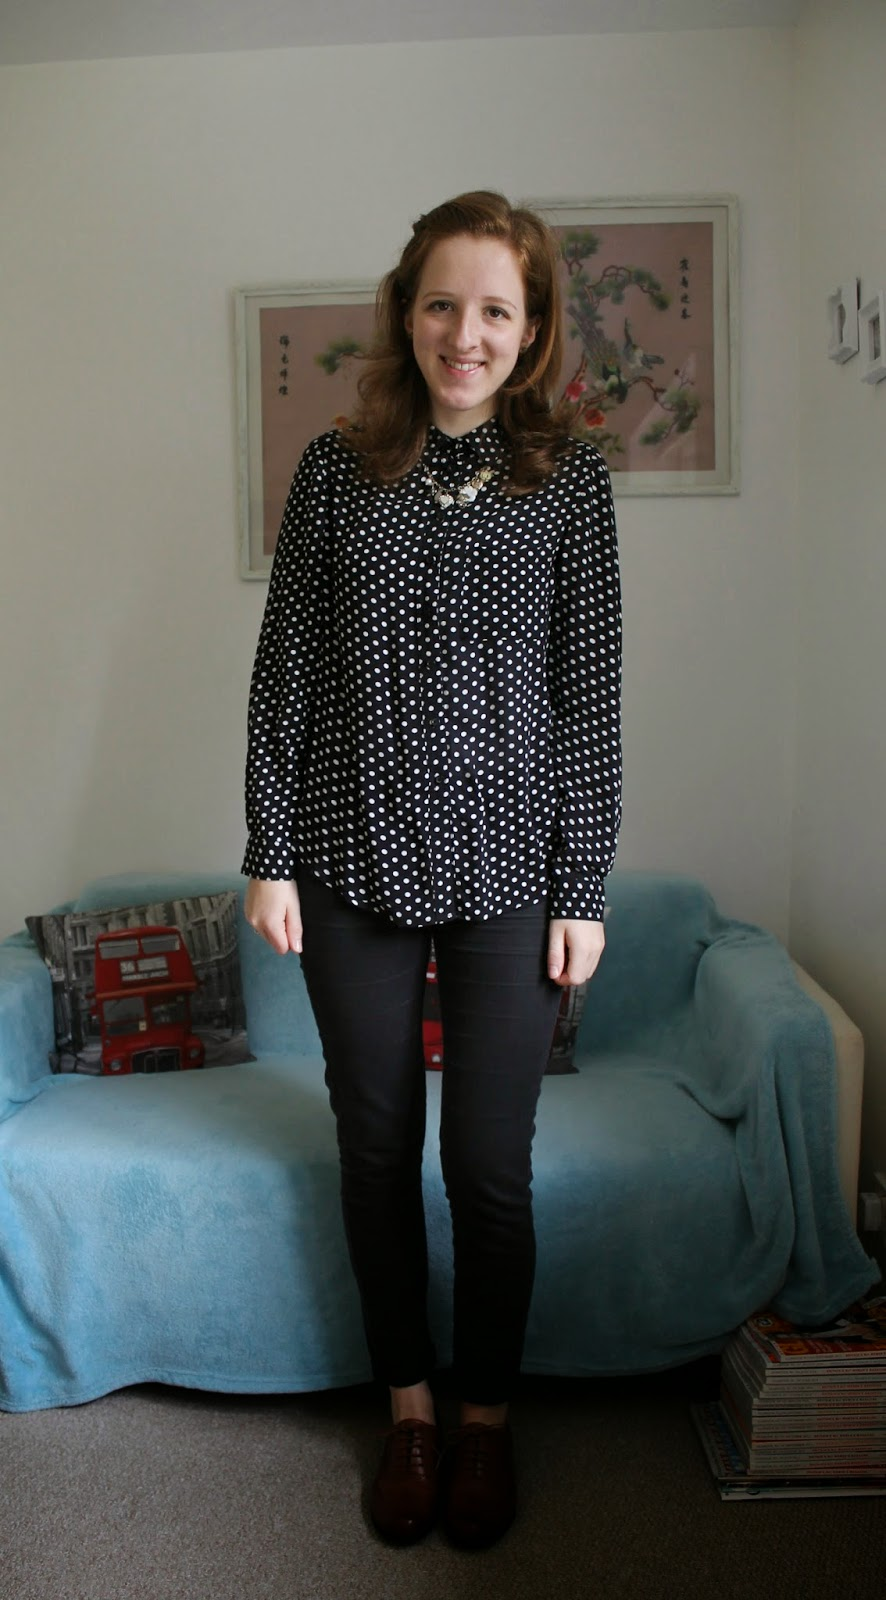 OOTD Spotty Shirt and Brogues